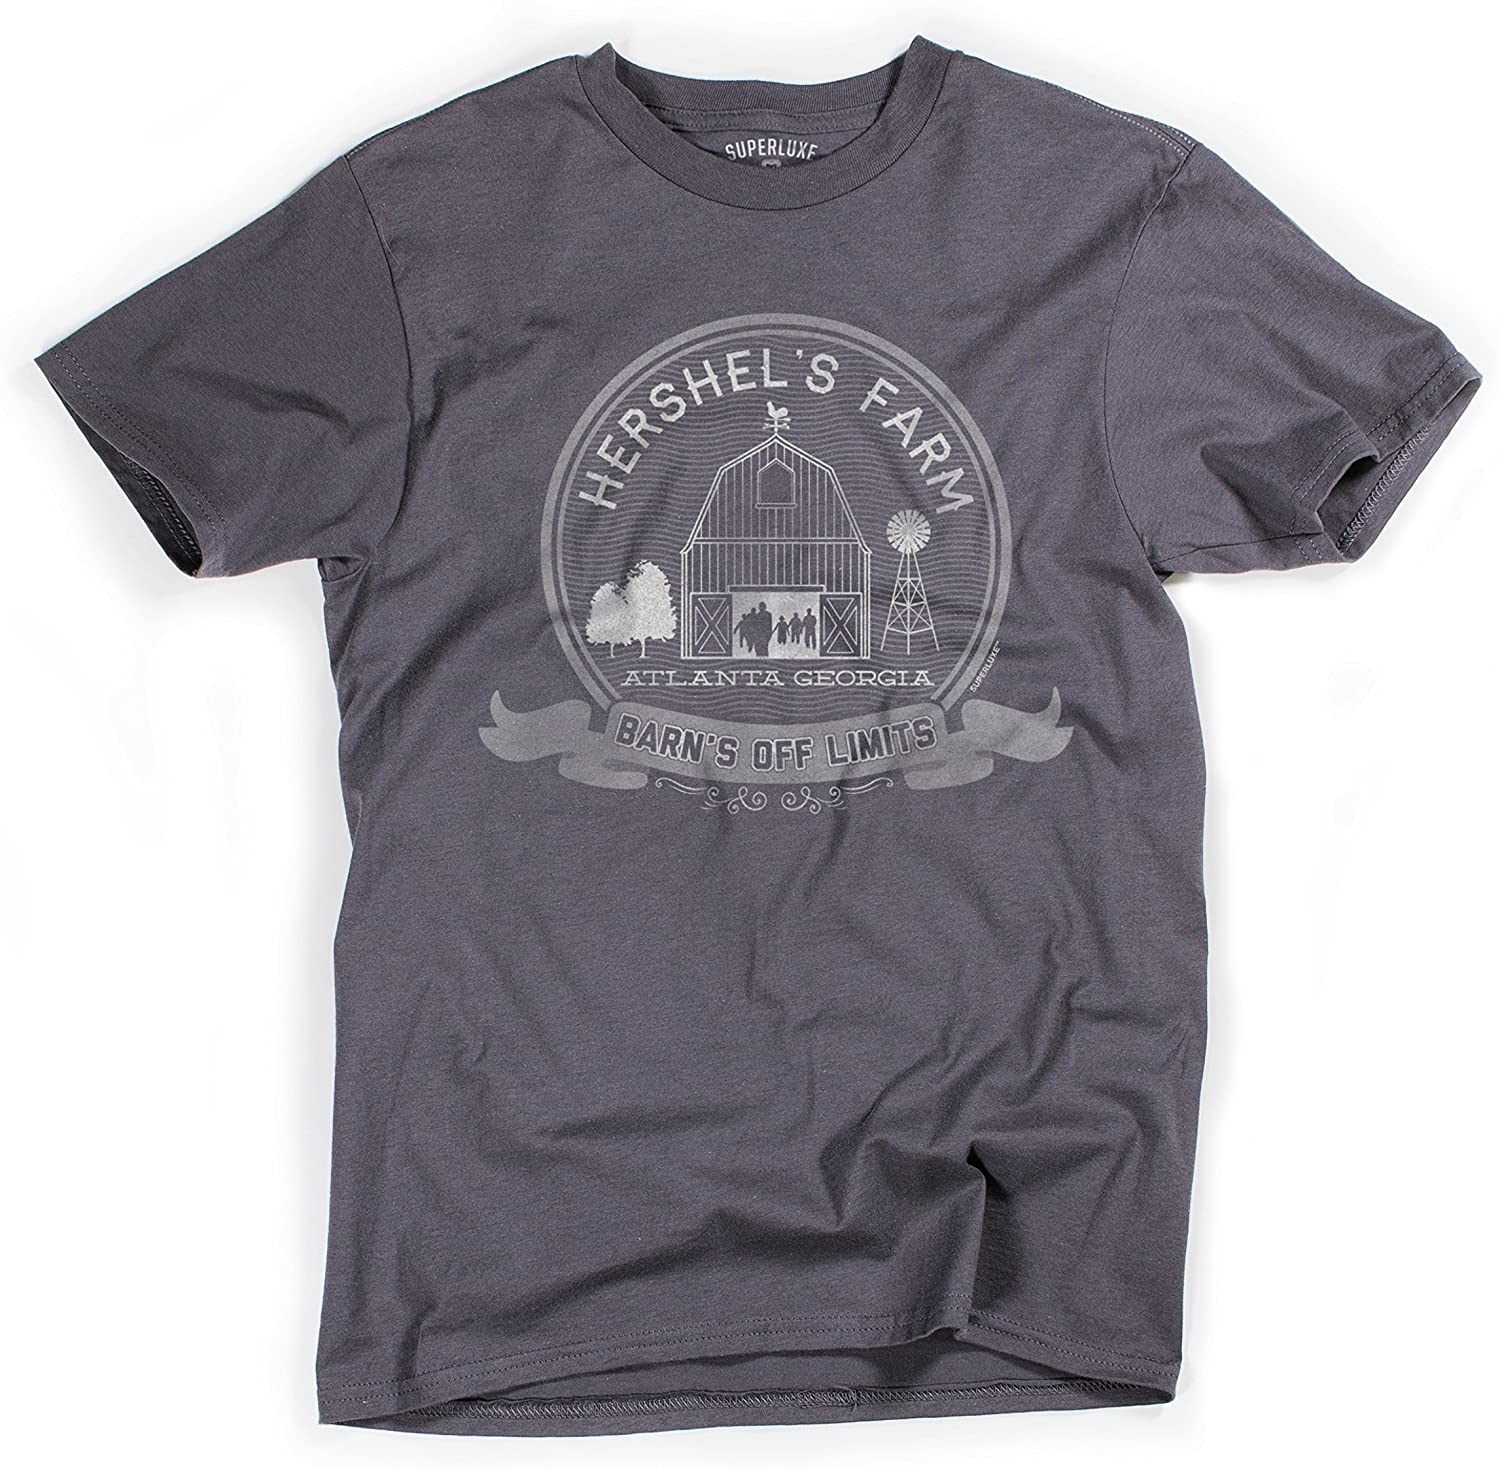 Superluxe Clothing Mens Hershels Farm Vintage Zombie Apocalypse Barn T-Shirt